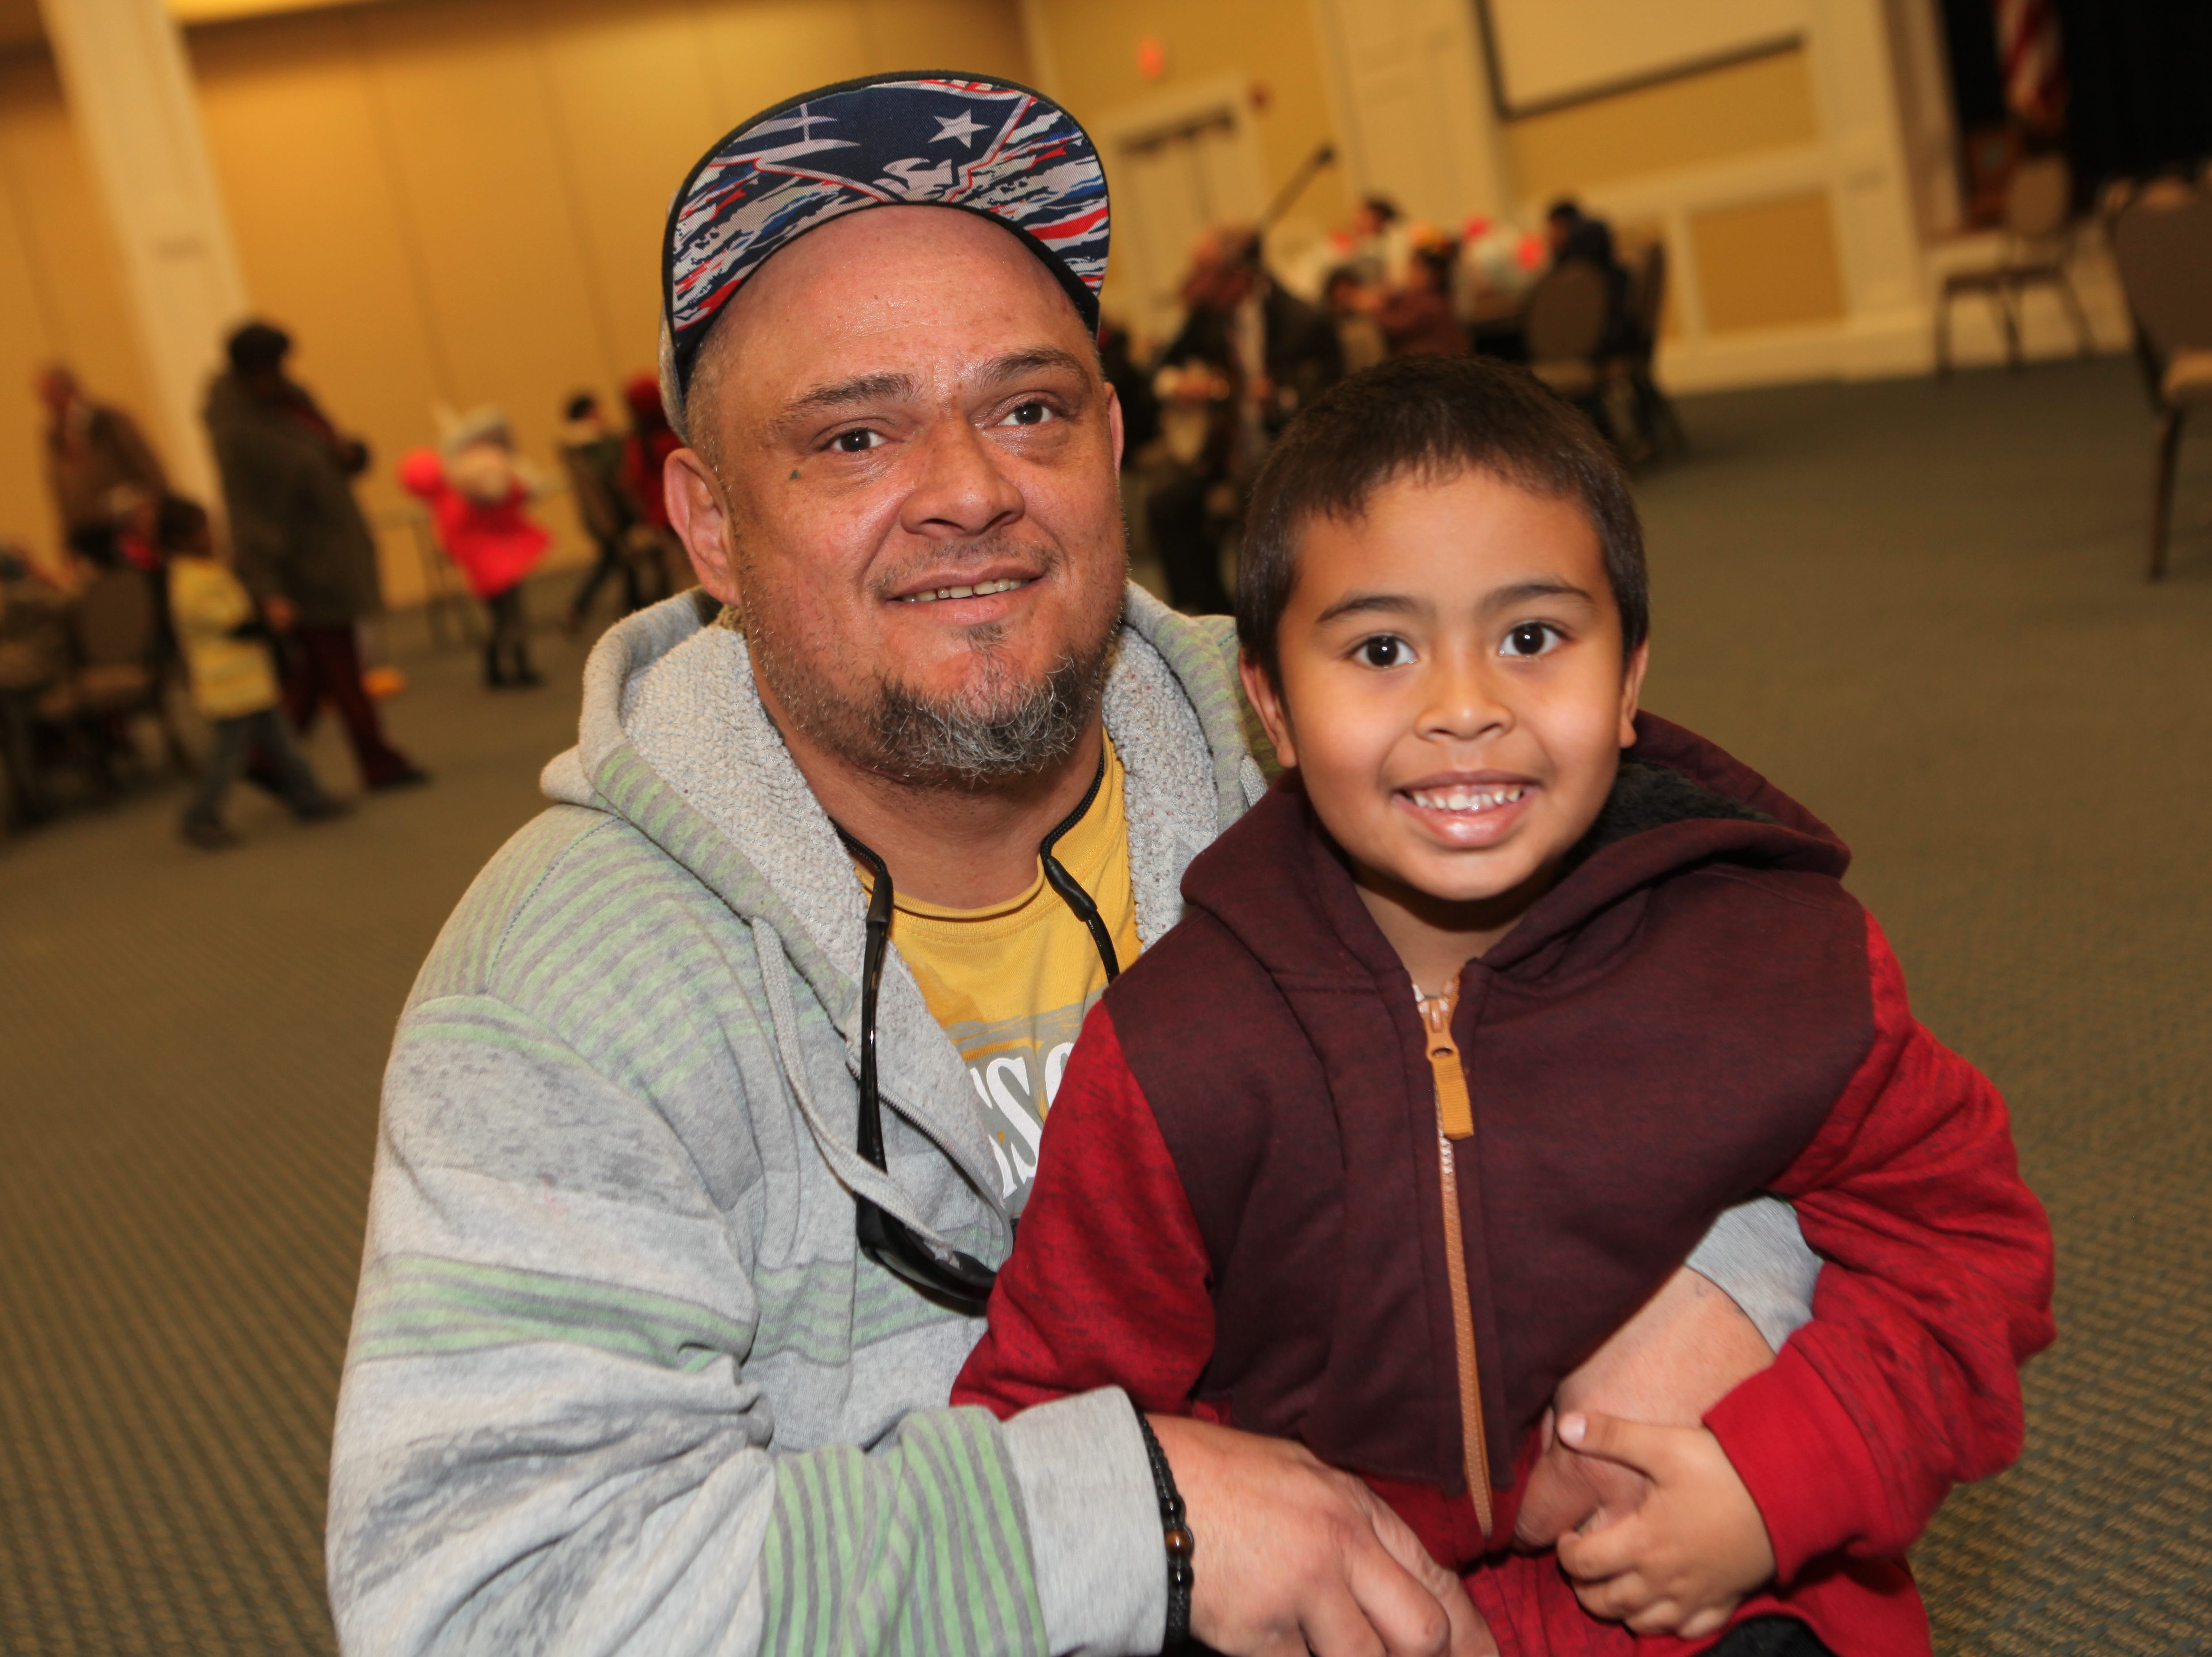 Reuben and Ramon Sanchez smile during the Clarksville Kiwanis Club's annual Christmas Party giving 144 Head Start children a visit with Santa Claus and a bag full of early Christmas presents, Dec. 4, 2018 in Clarksville, Tenn.